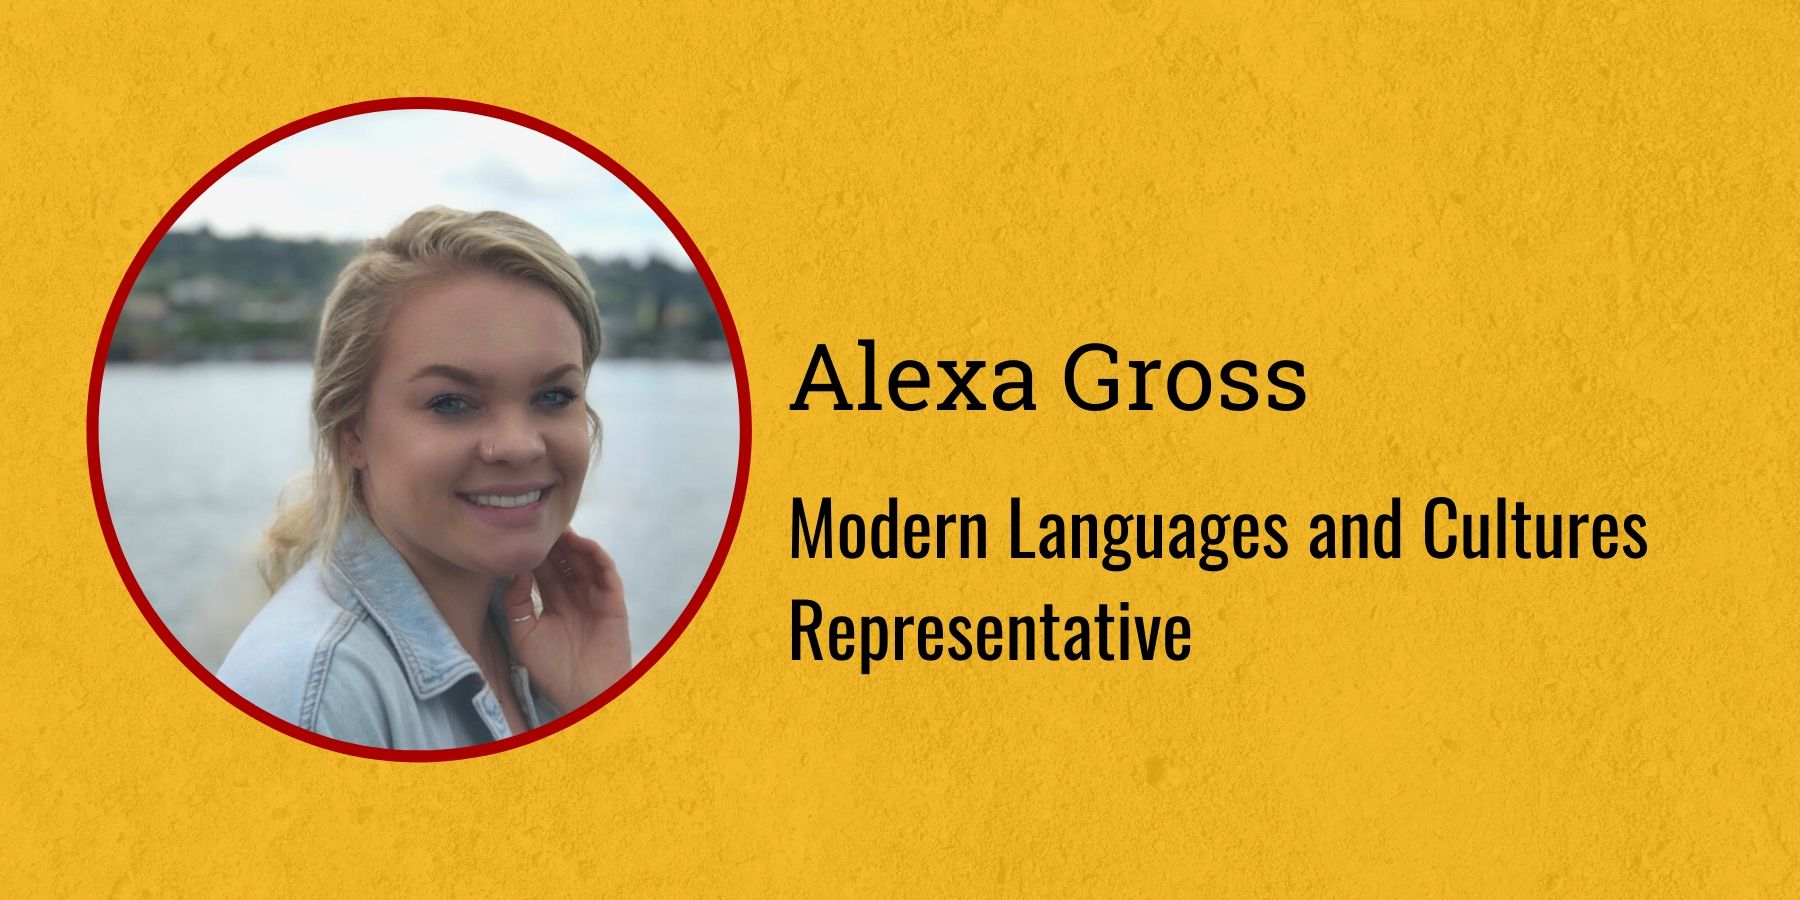 Image of Alexa Gross, and text Modern Languages and Cultures Representative